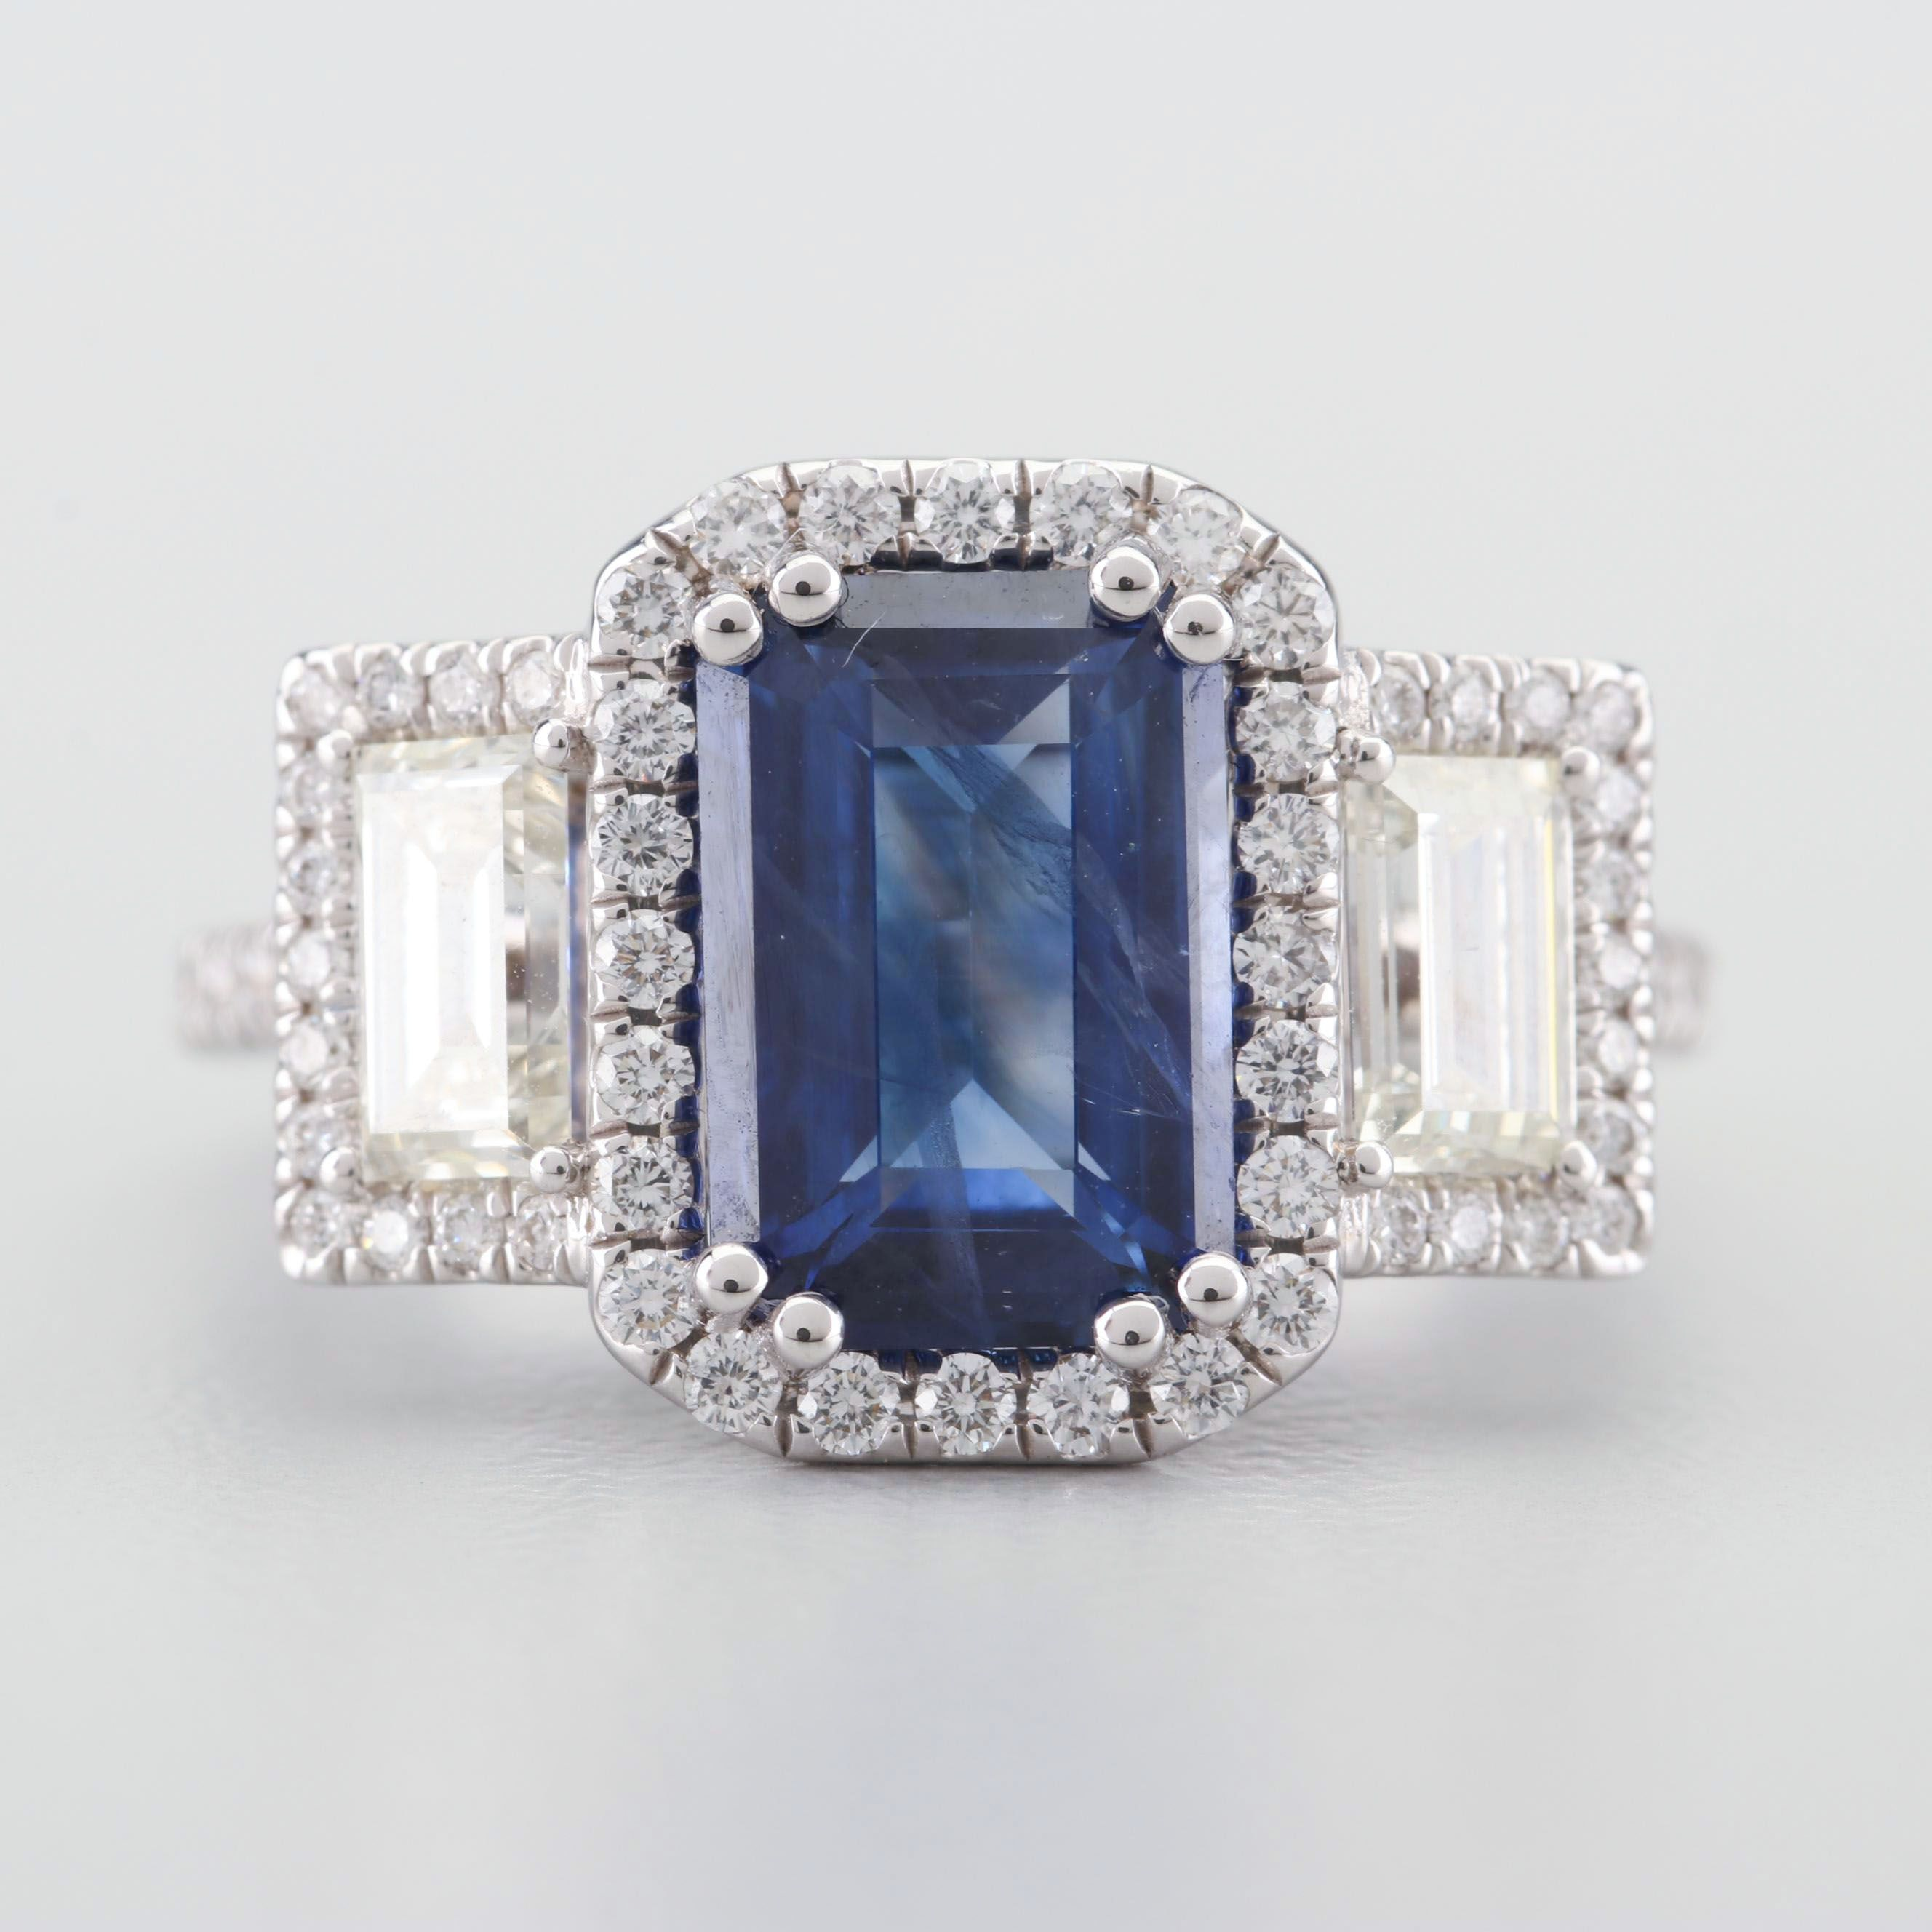 18K White Gold 3.18 CT Sapphire and 1.90 CTW Diamond Ring with AGL Certificate